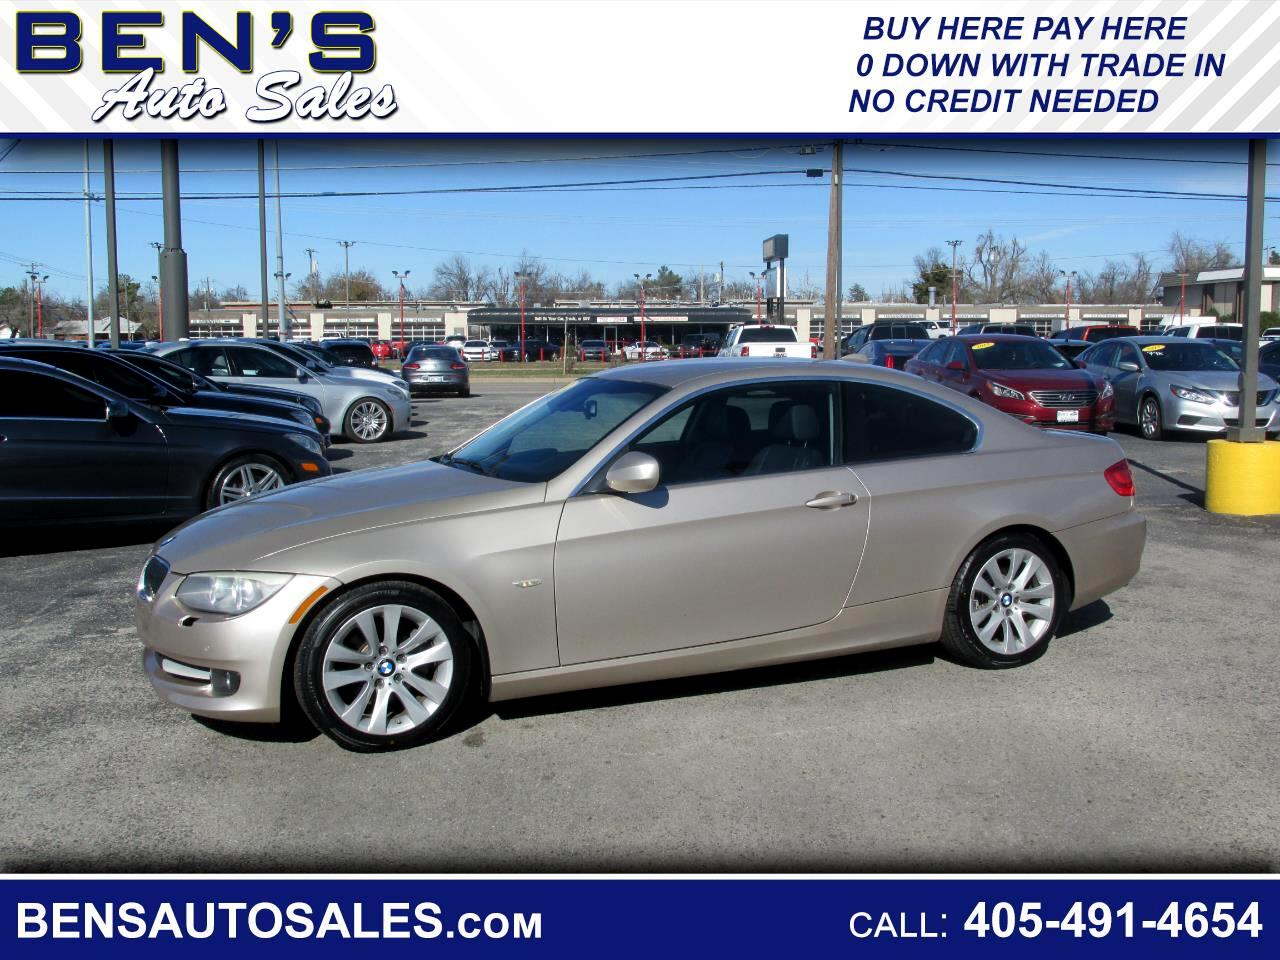 BMW 3-Series 328i Coupe - SULEV 2013